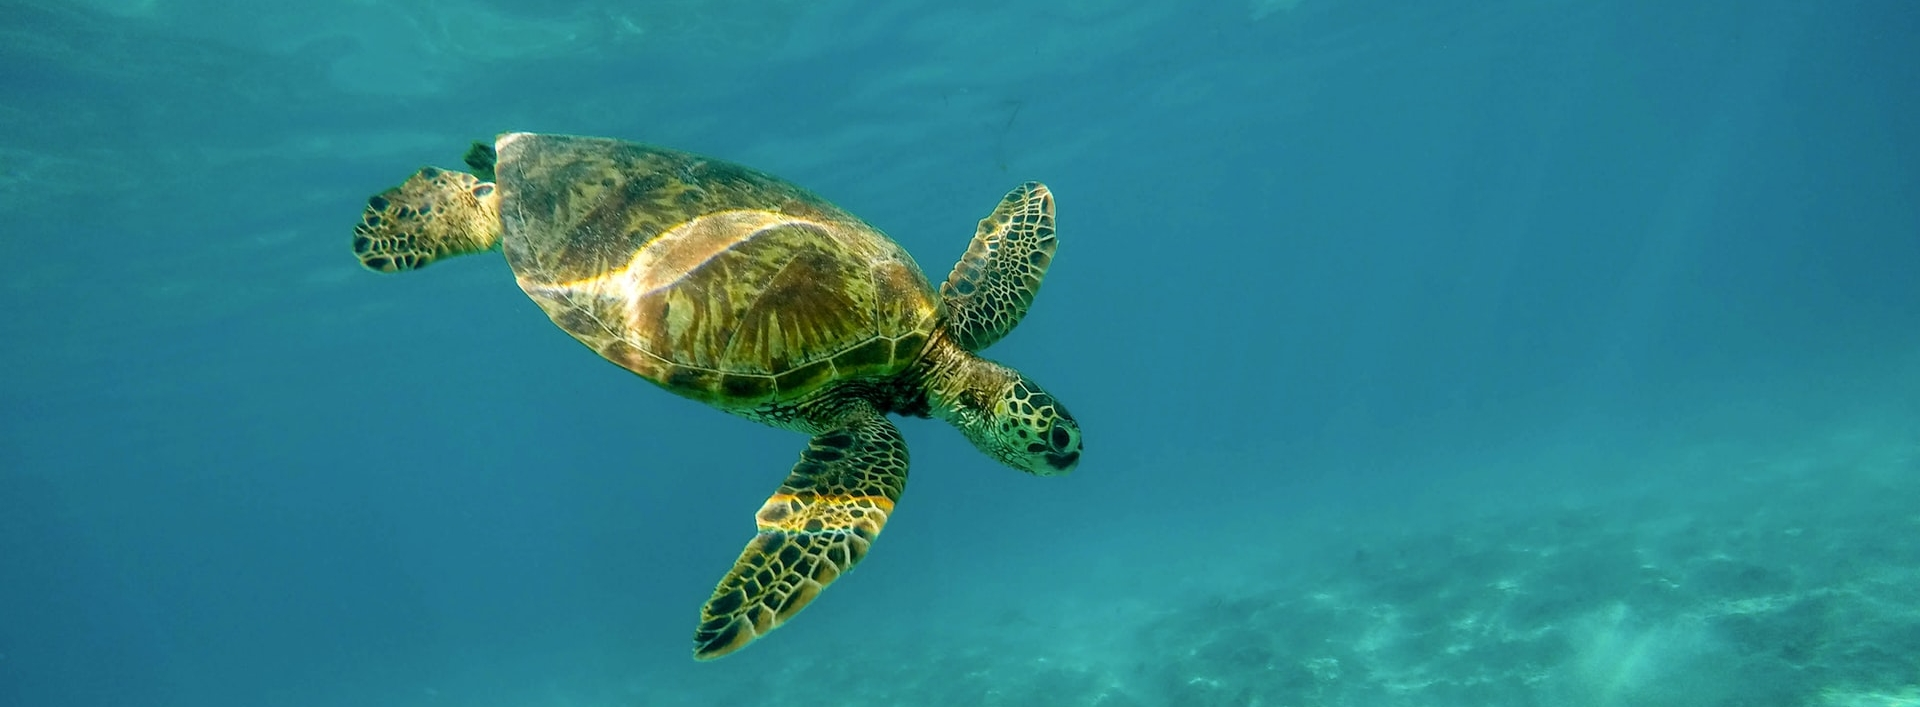 A turtle swims underwater